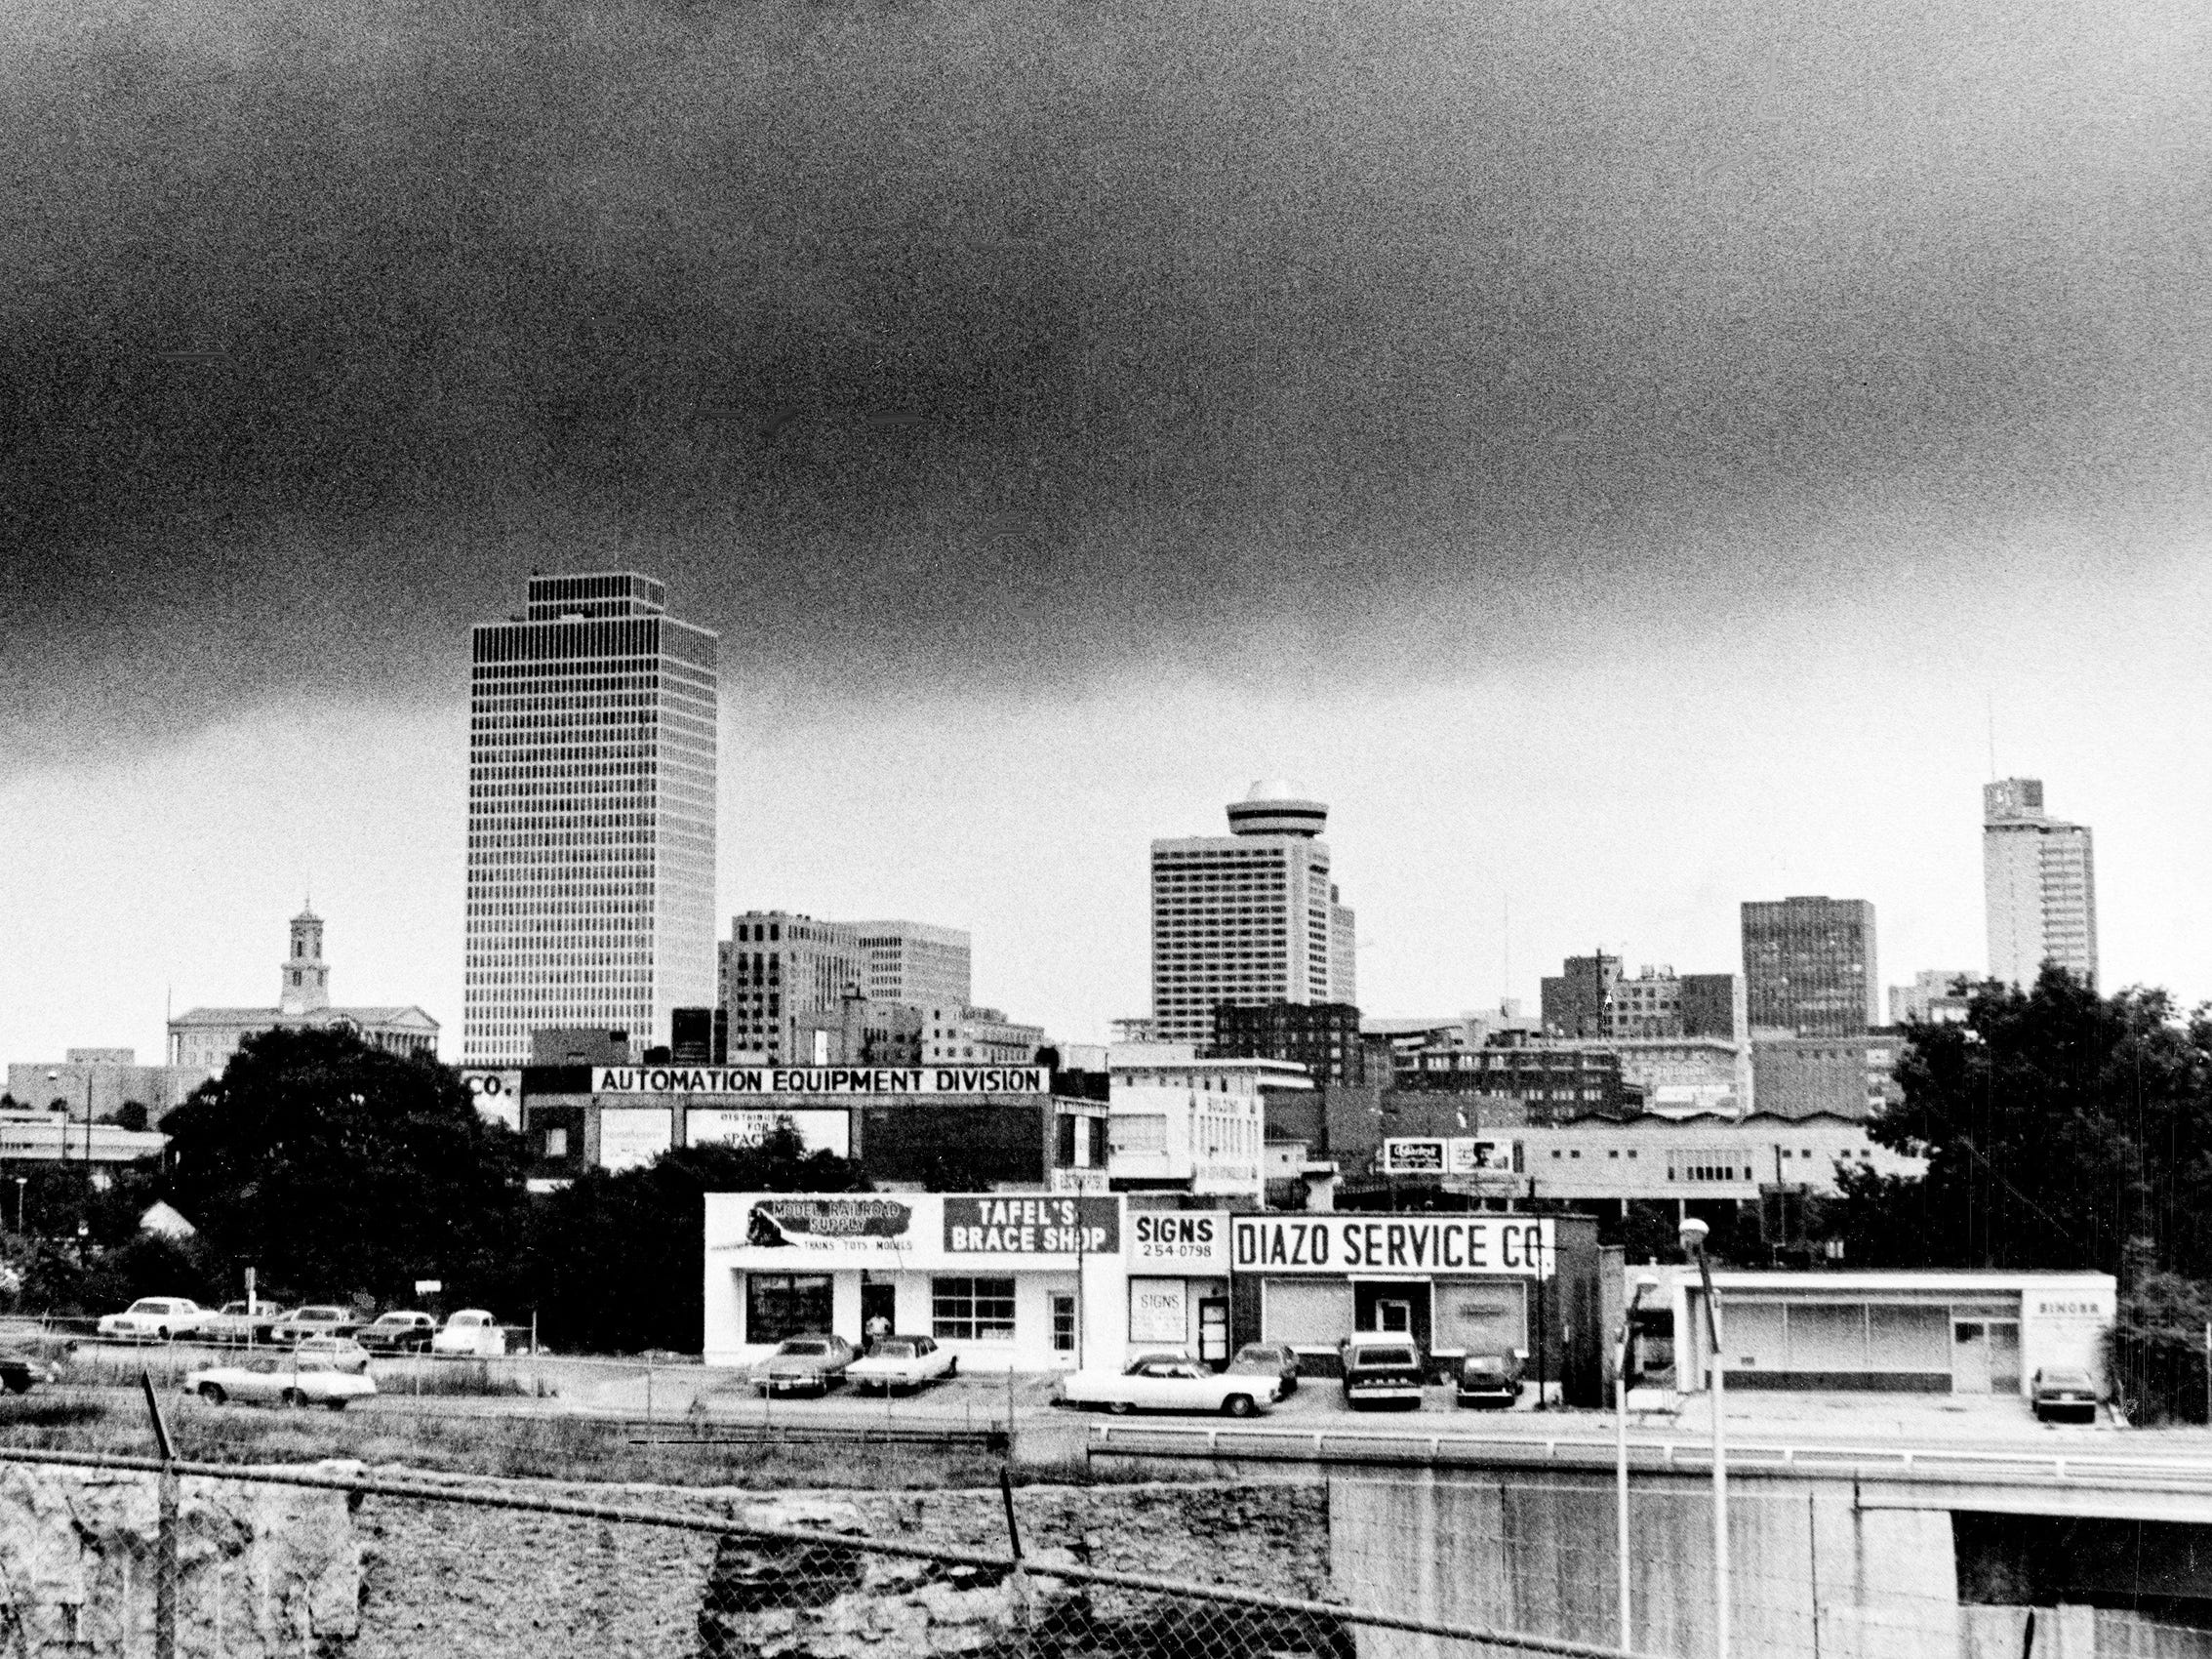 A summer afternoon rainstorm rolls in over the Nashville skyline July 27, 1976.